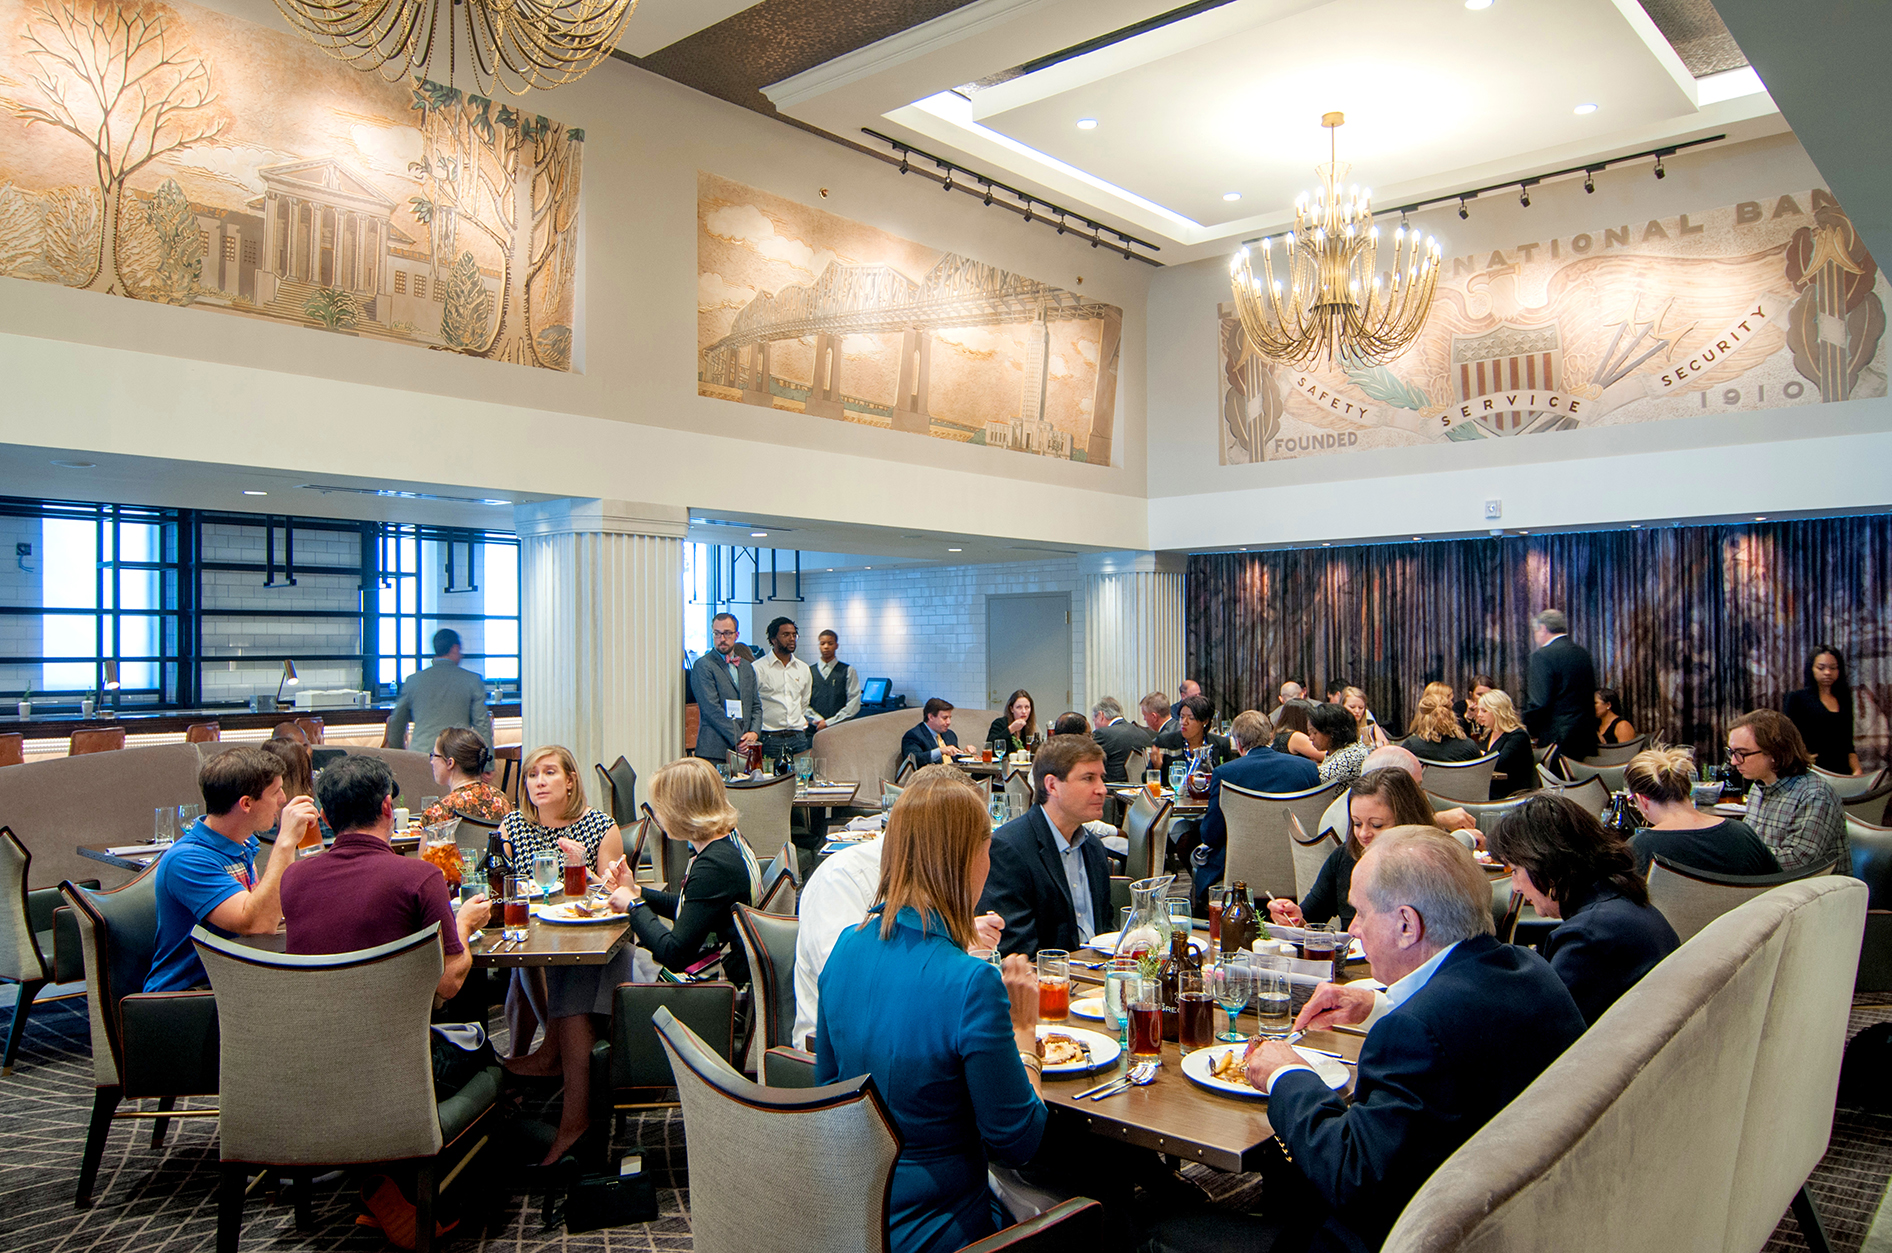 At the Watermark's lobby and restaurant, restored murals by iconic artist Angela Gregory offer diners a glimpse of local history. COURTESY WAMPOLD HOSPITALITY COLLECTION.